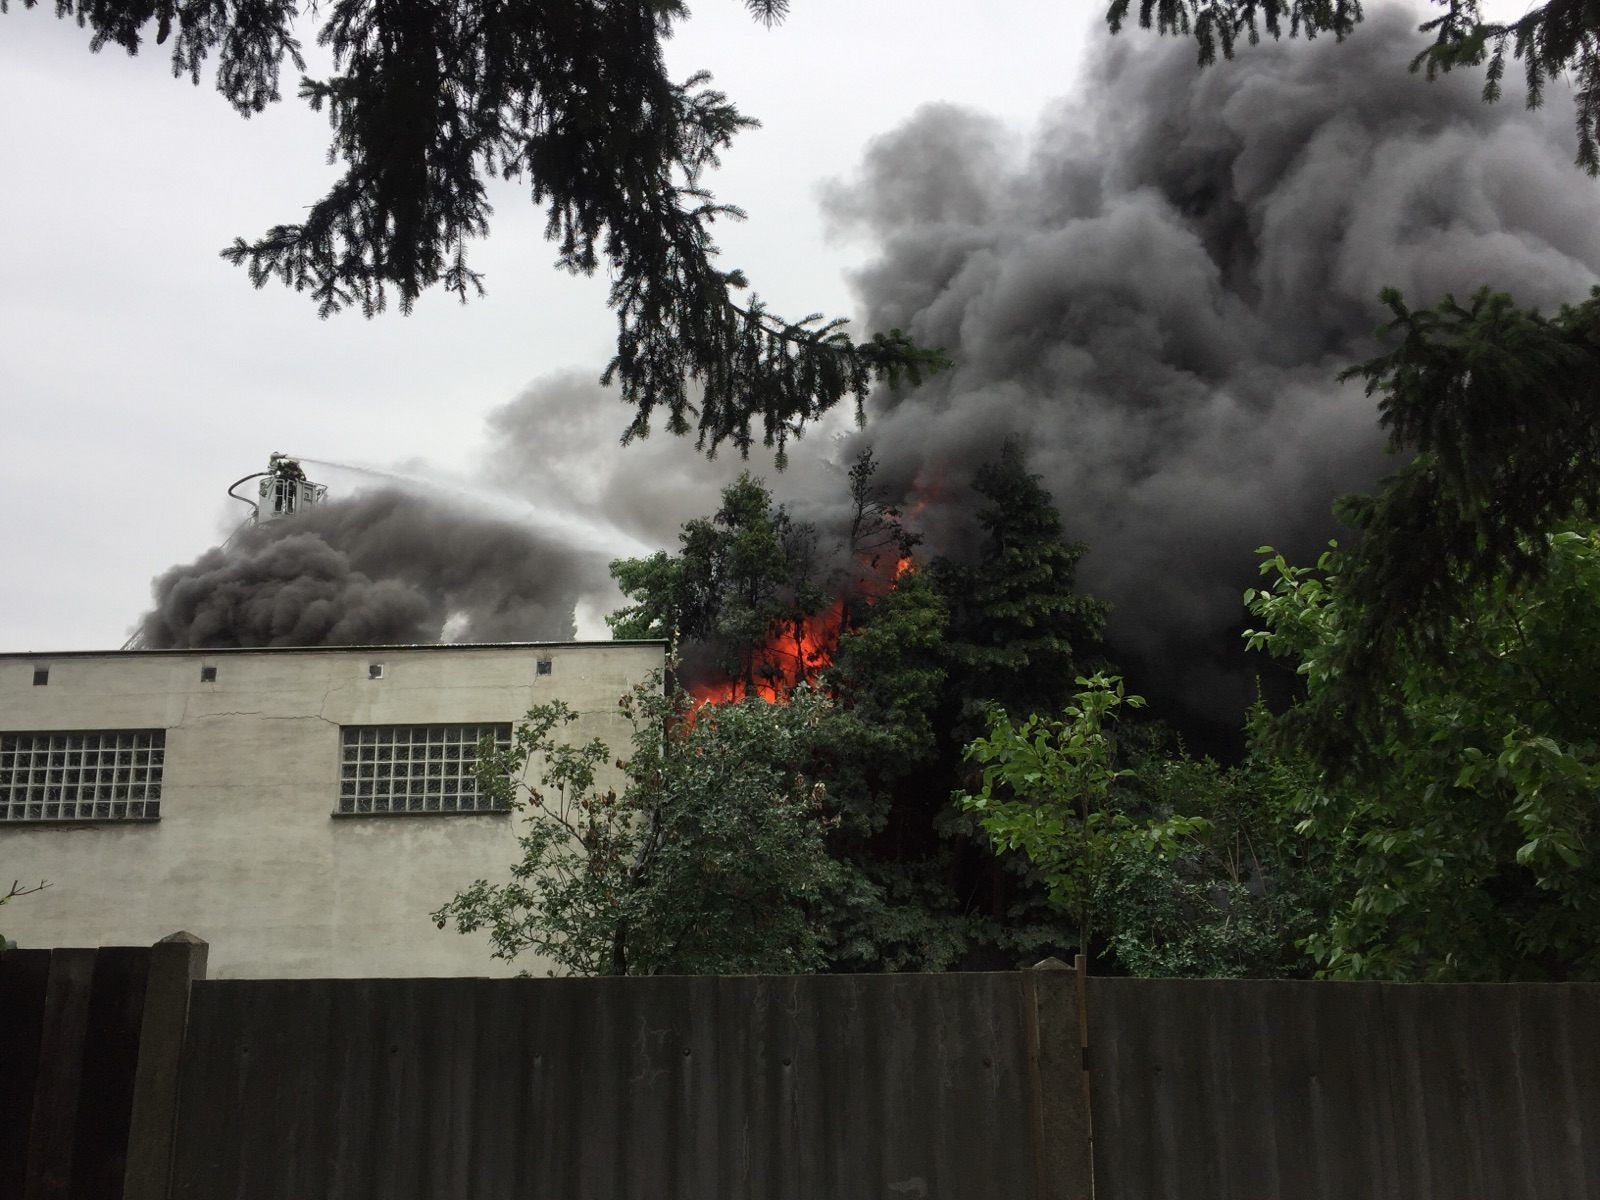 Die Lagerhalle in Wien-Favoriten stand am Donnerstag in Vollbrand.